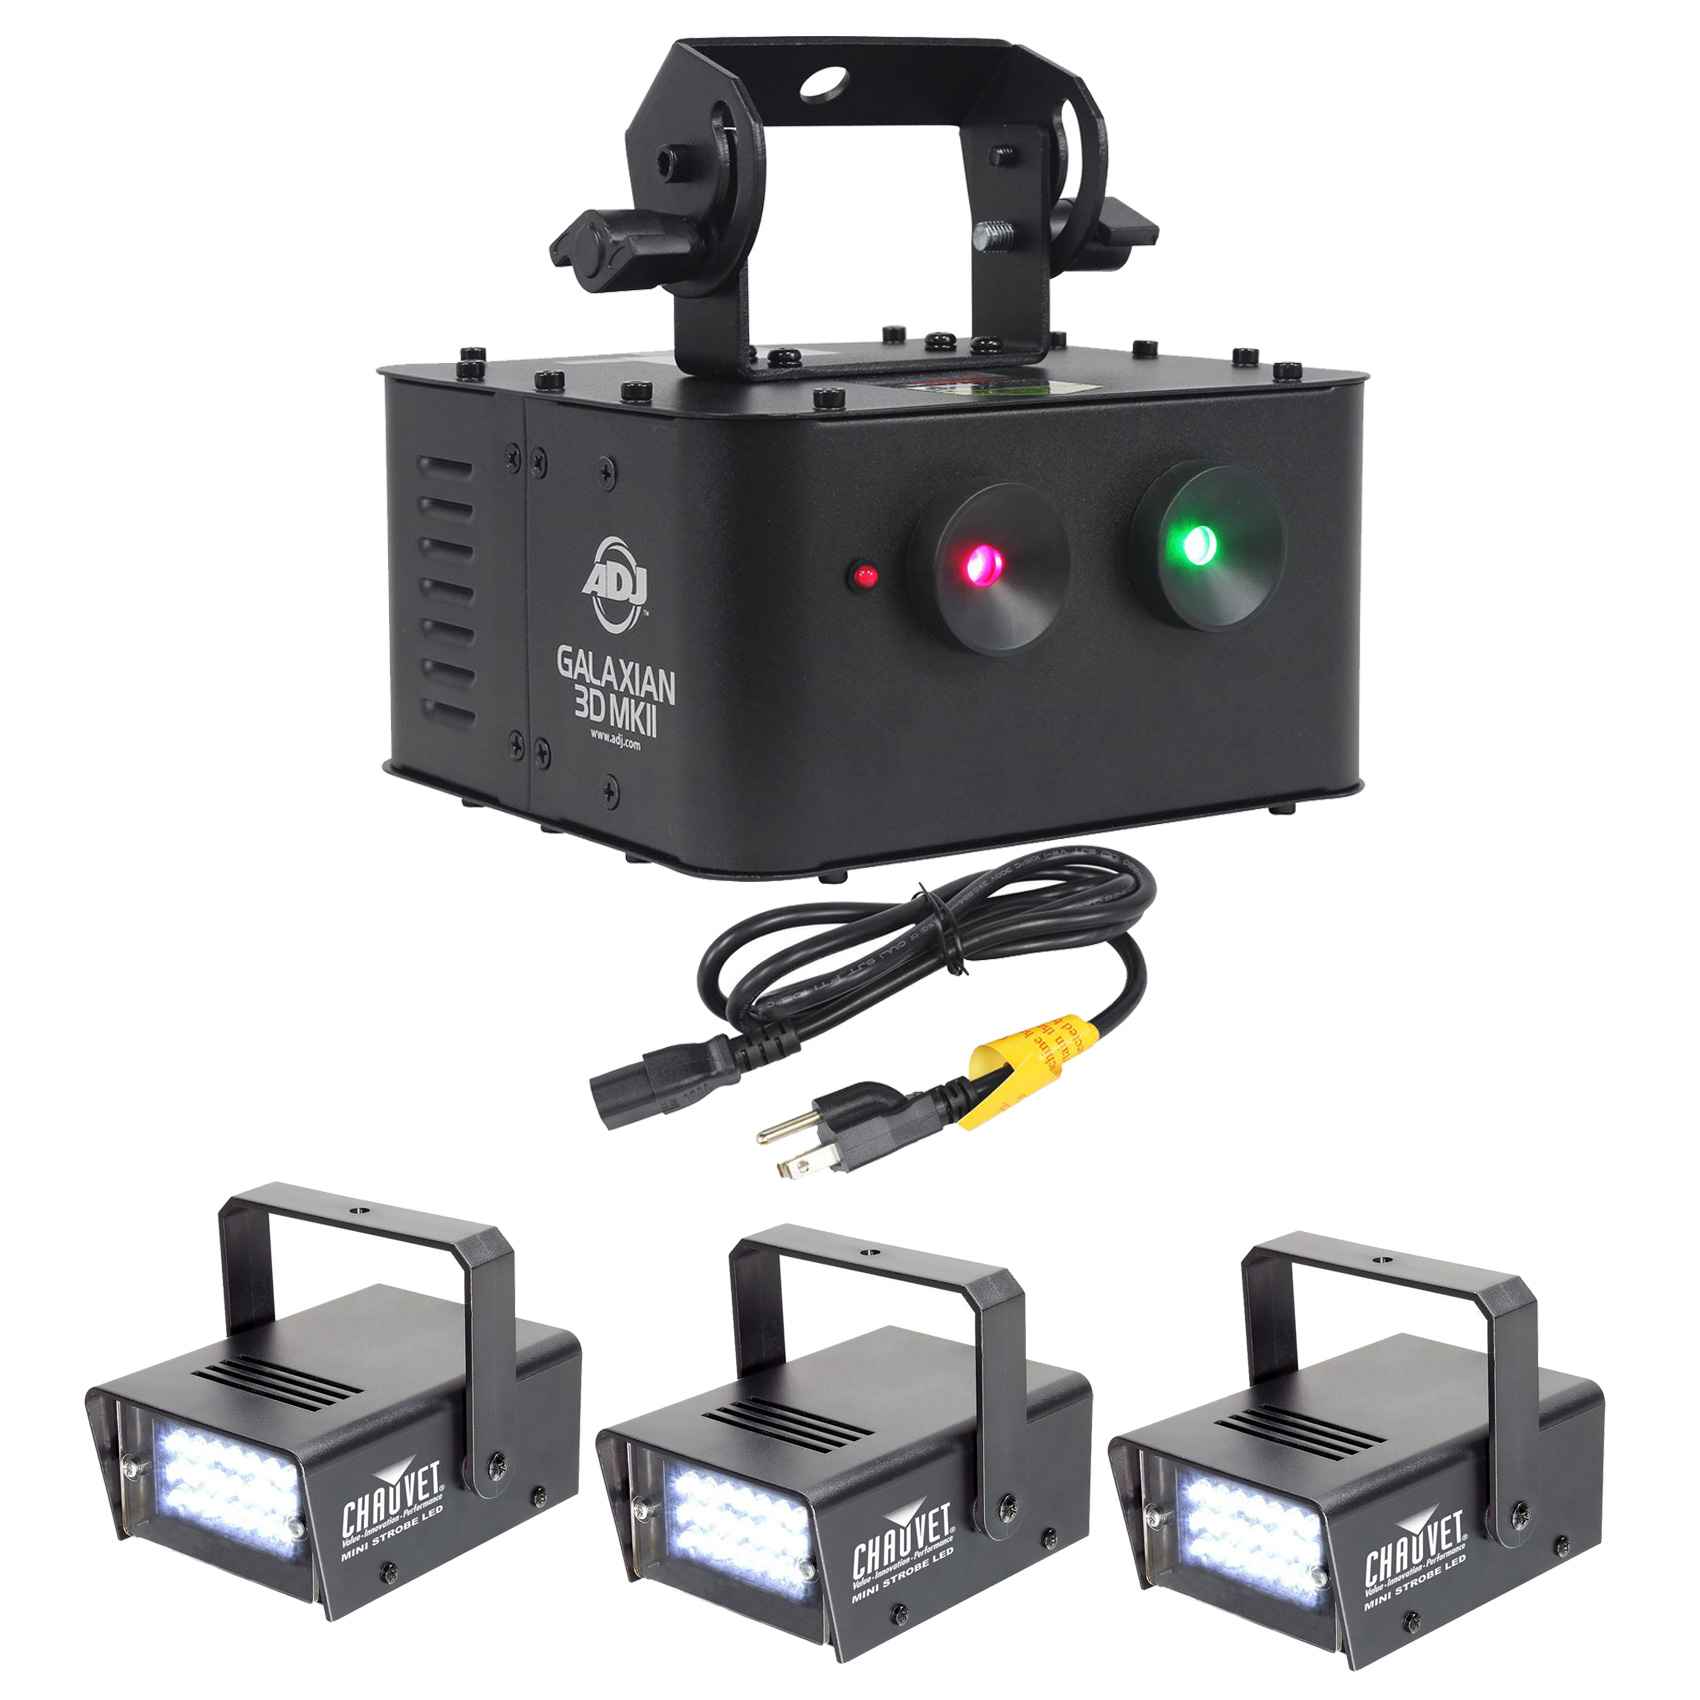 American DJ GALAXIAN 3D MKII Dual Red Green Laser Effect Light+(3) Strobe Lights by American DJ